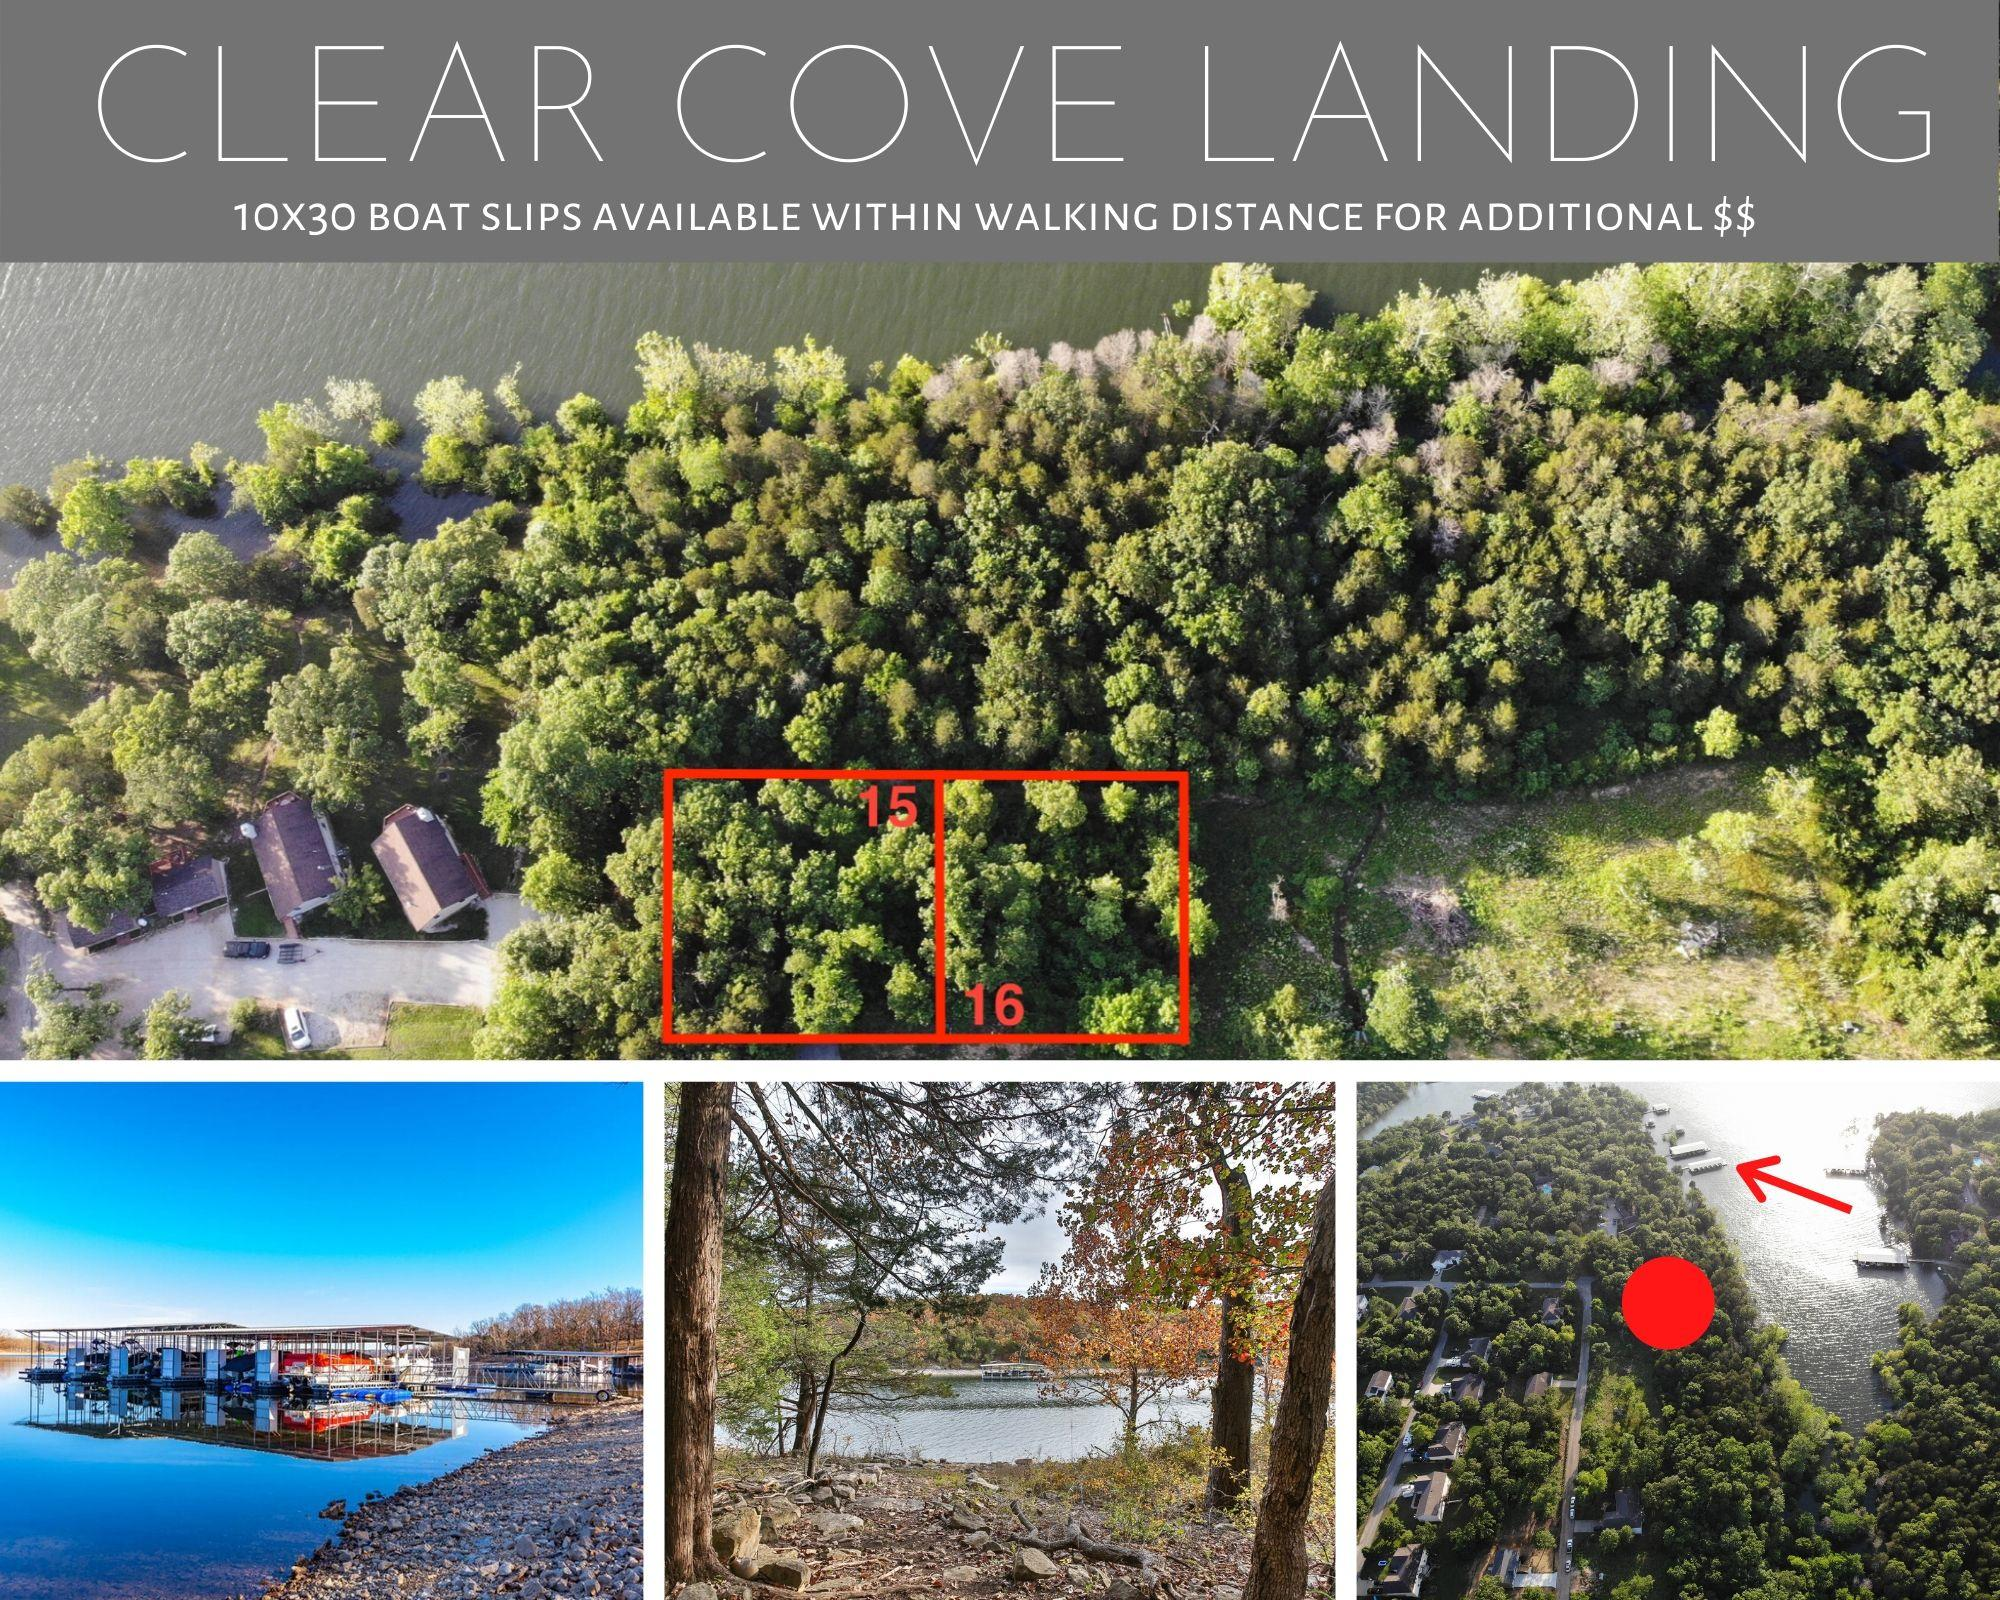 15 & 16 Clear Cove Landing Reeds Spring, MO 65737